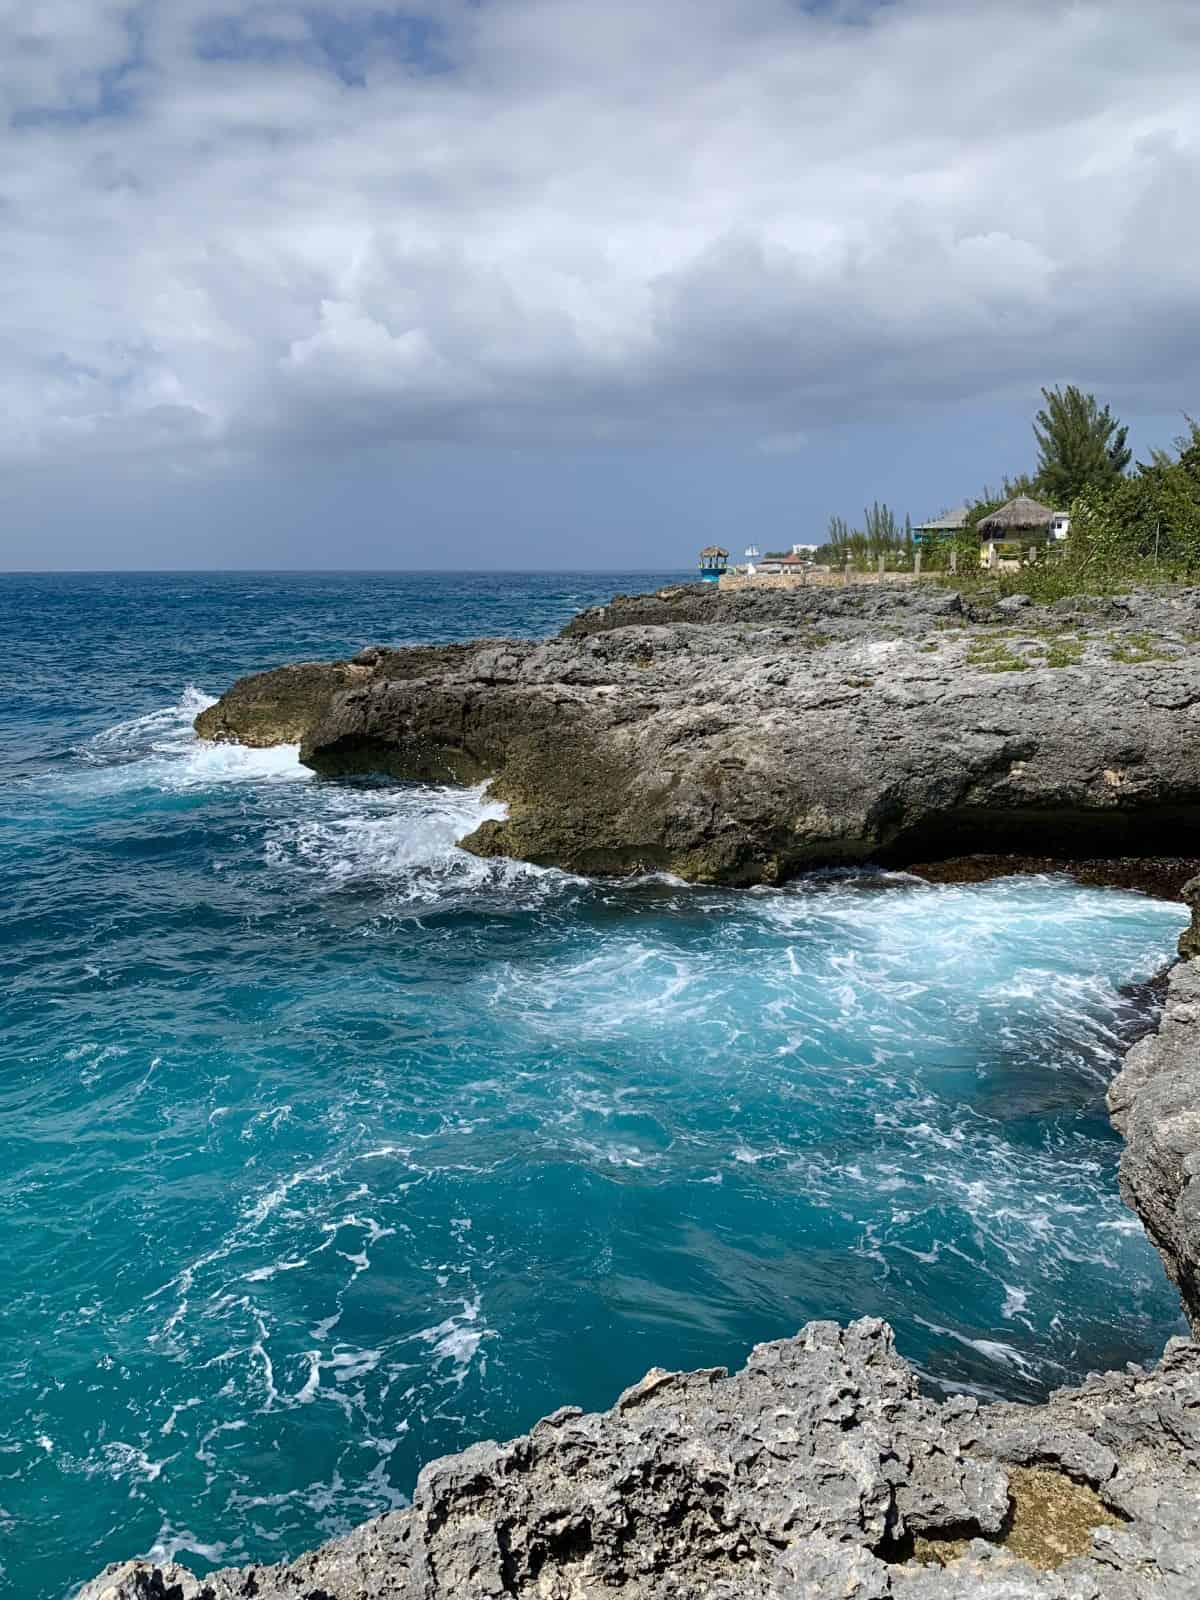 The West End cliffs in Negril are a must-visit